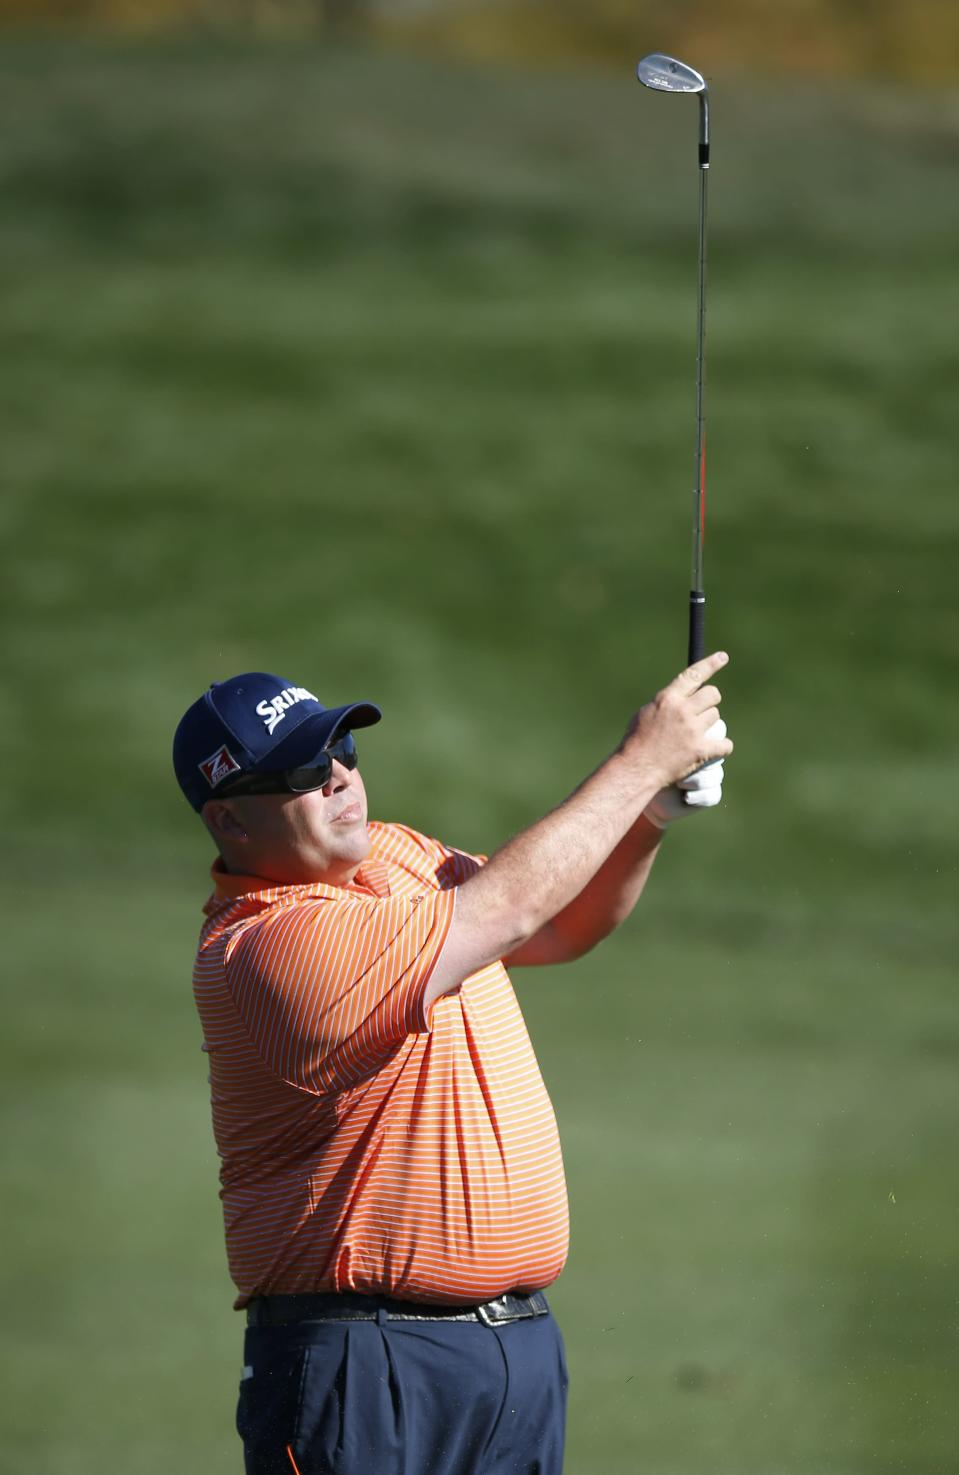 Kevin Stadler hits his approach shot onto the second green during the final round of the Phoenix Open golf tournament on Sunday, Feb. 2, 2014, in Scottsdale, Ariz. (AP Photo/Ross D. Franklin)